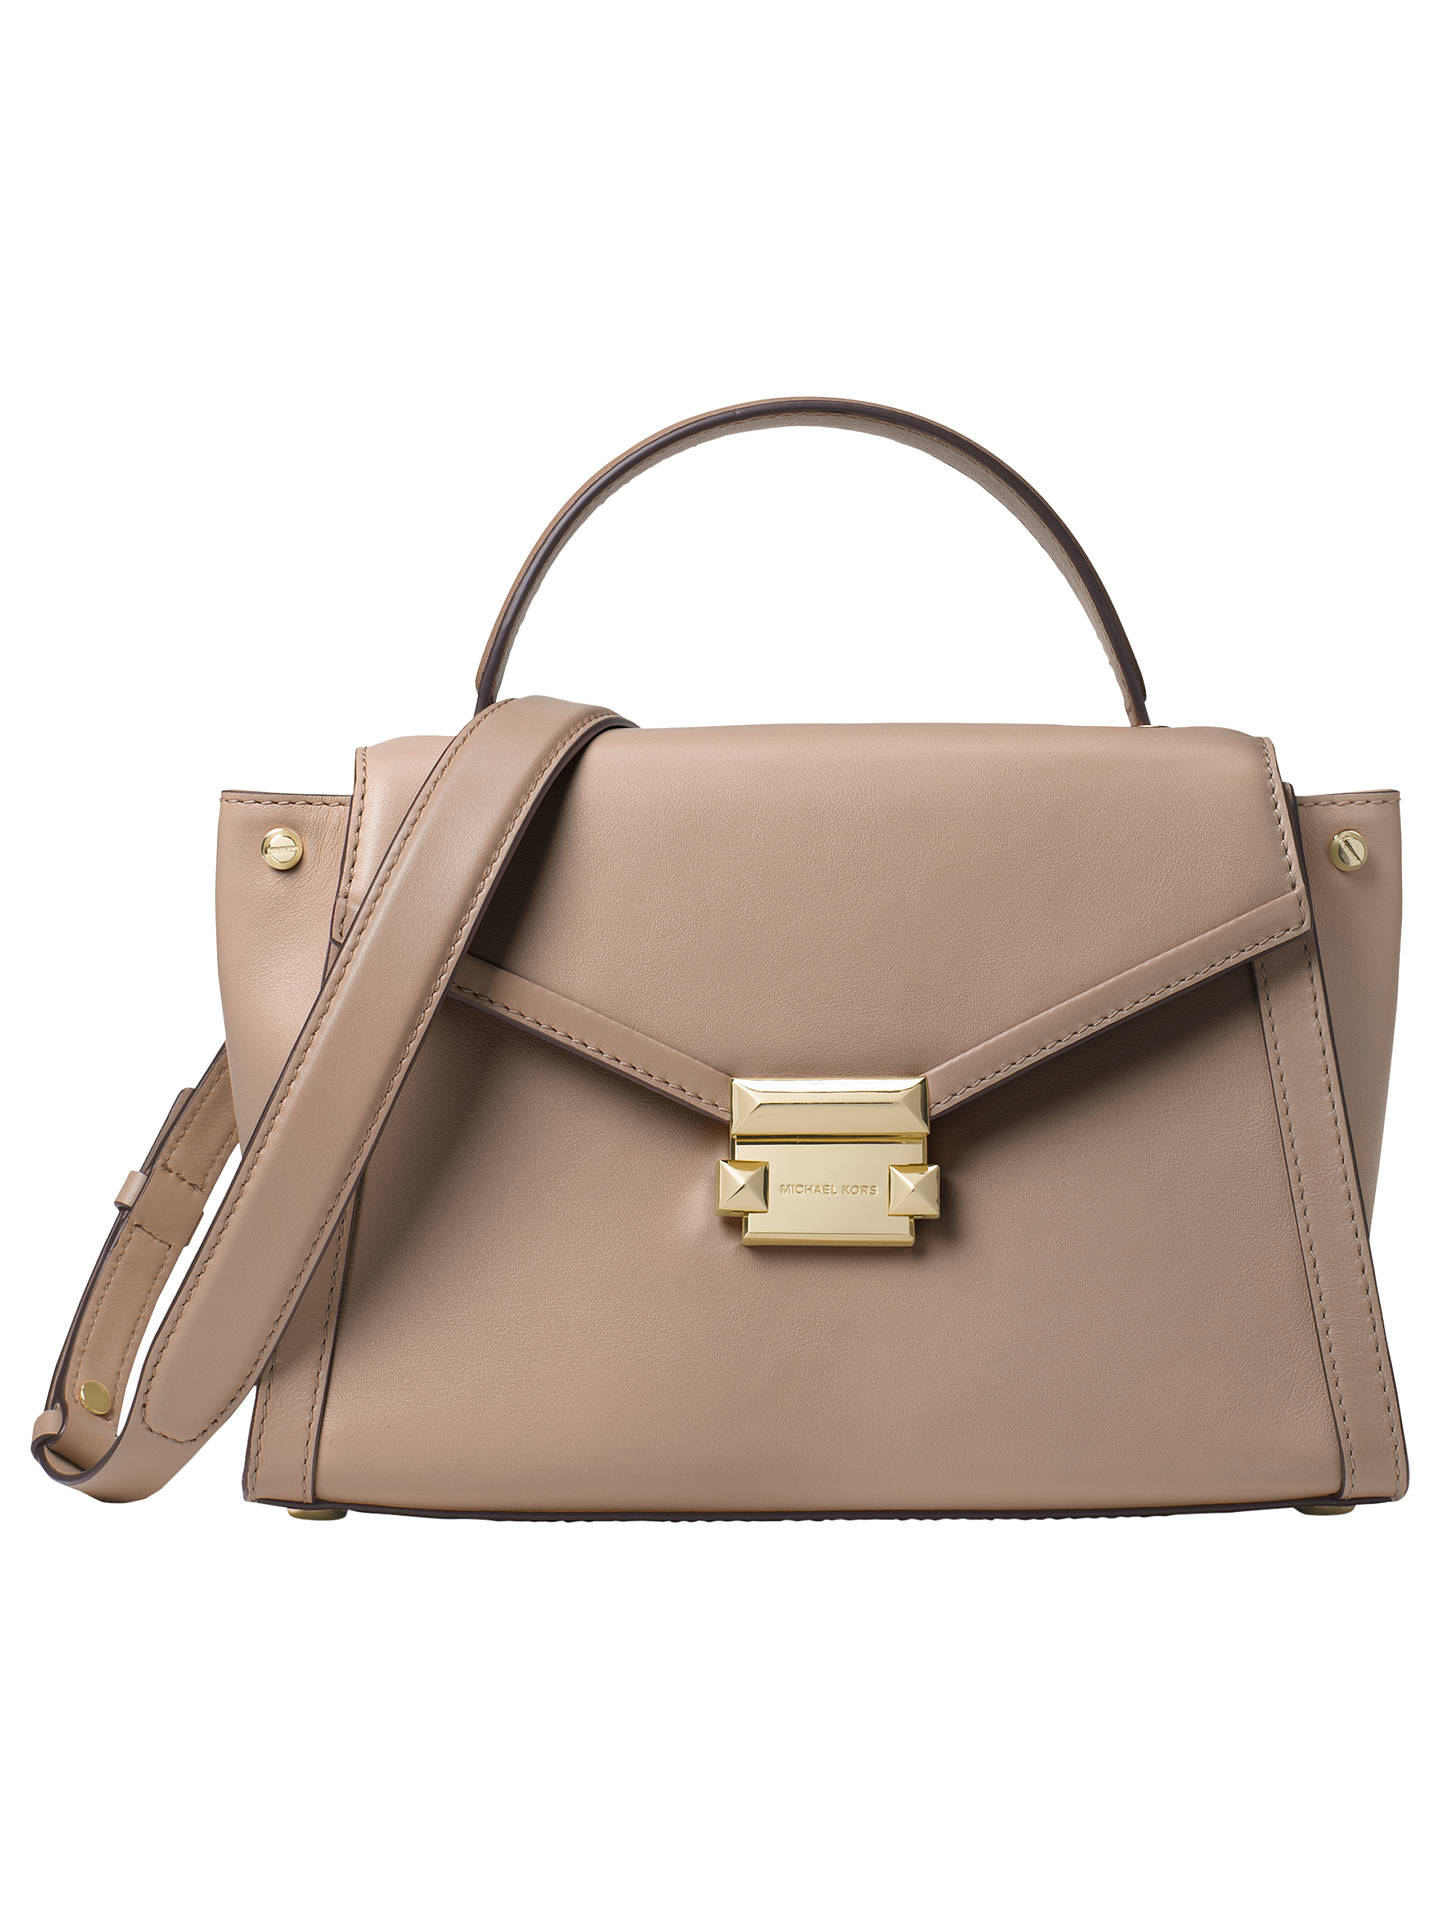 fde7ebbea950c0 Buy MICHAEL Michael Kors Whitney Medium Leather Satchel Bag, Truffle Online  at johnlewis.com ...